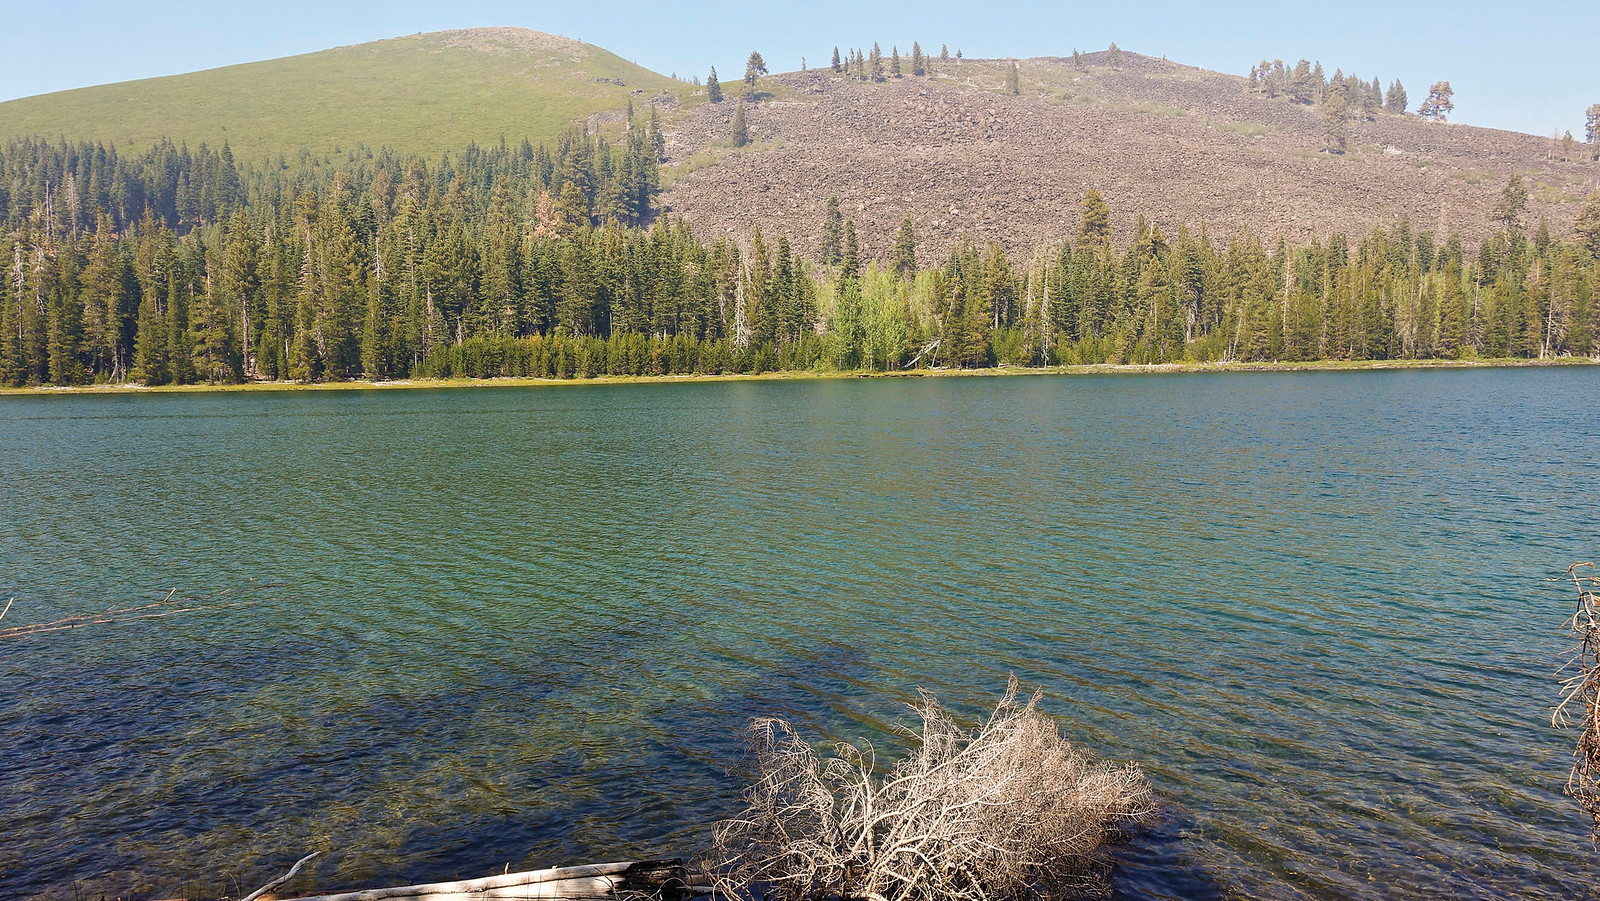 Beautiful Lake Eiler, with Eiler Cone in the distance.